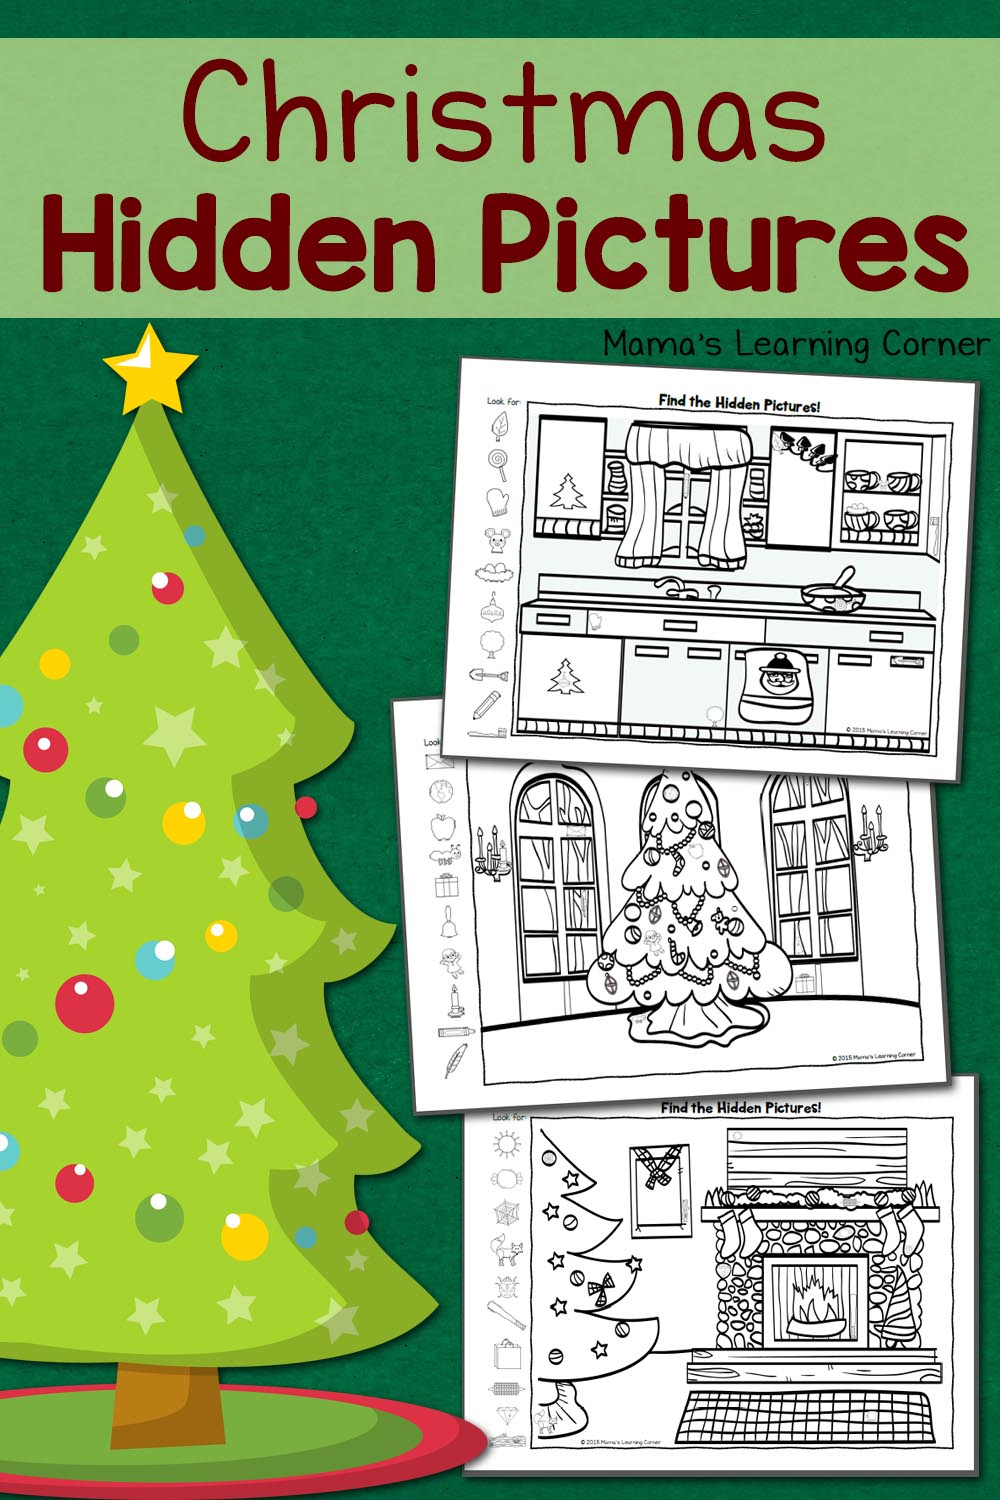 medium resolution of Christmas Hidden Pictures Worksheets - Mamas Learning Corner